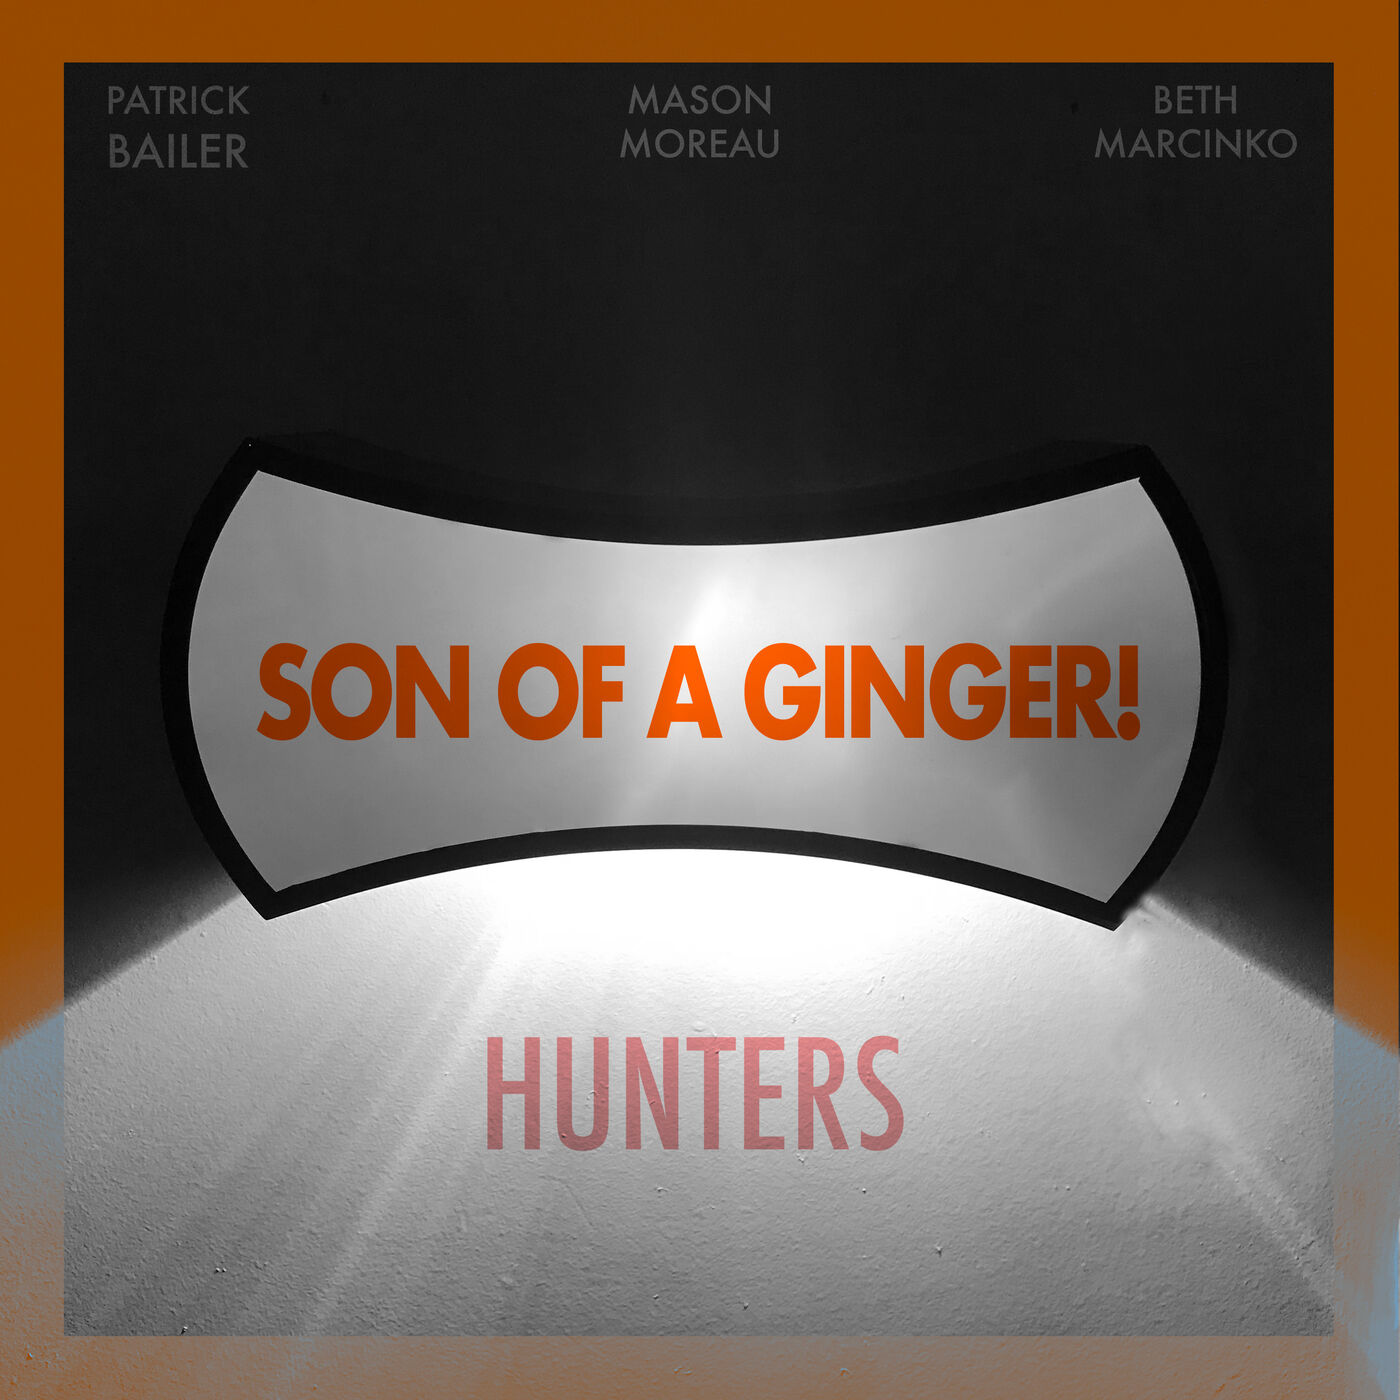 Hunters (created by David Weil)